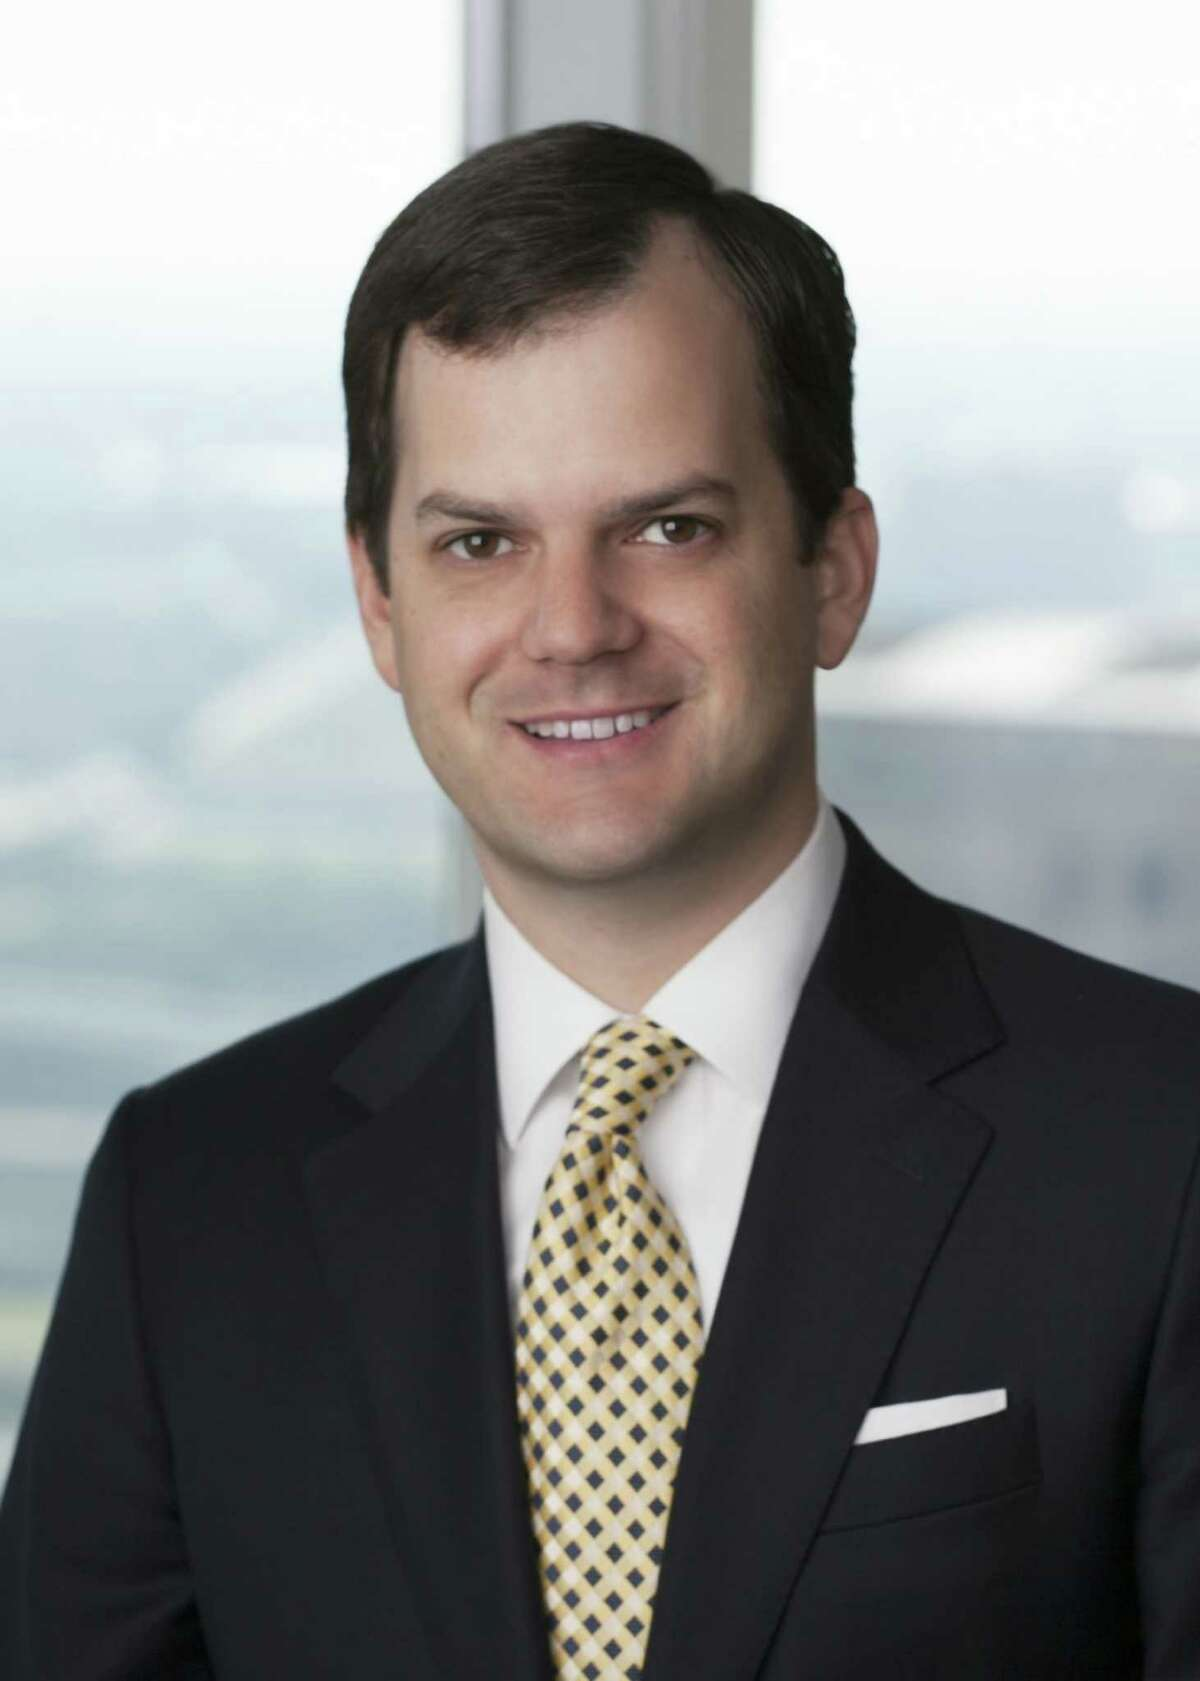 Jones Day has named Paul M. Green as a partner in Houston. Green, an attorney in the business restructuring and reorganization practice, represents stakeholders in corporate workouts and restructurings.